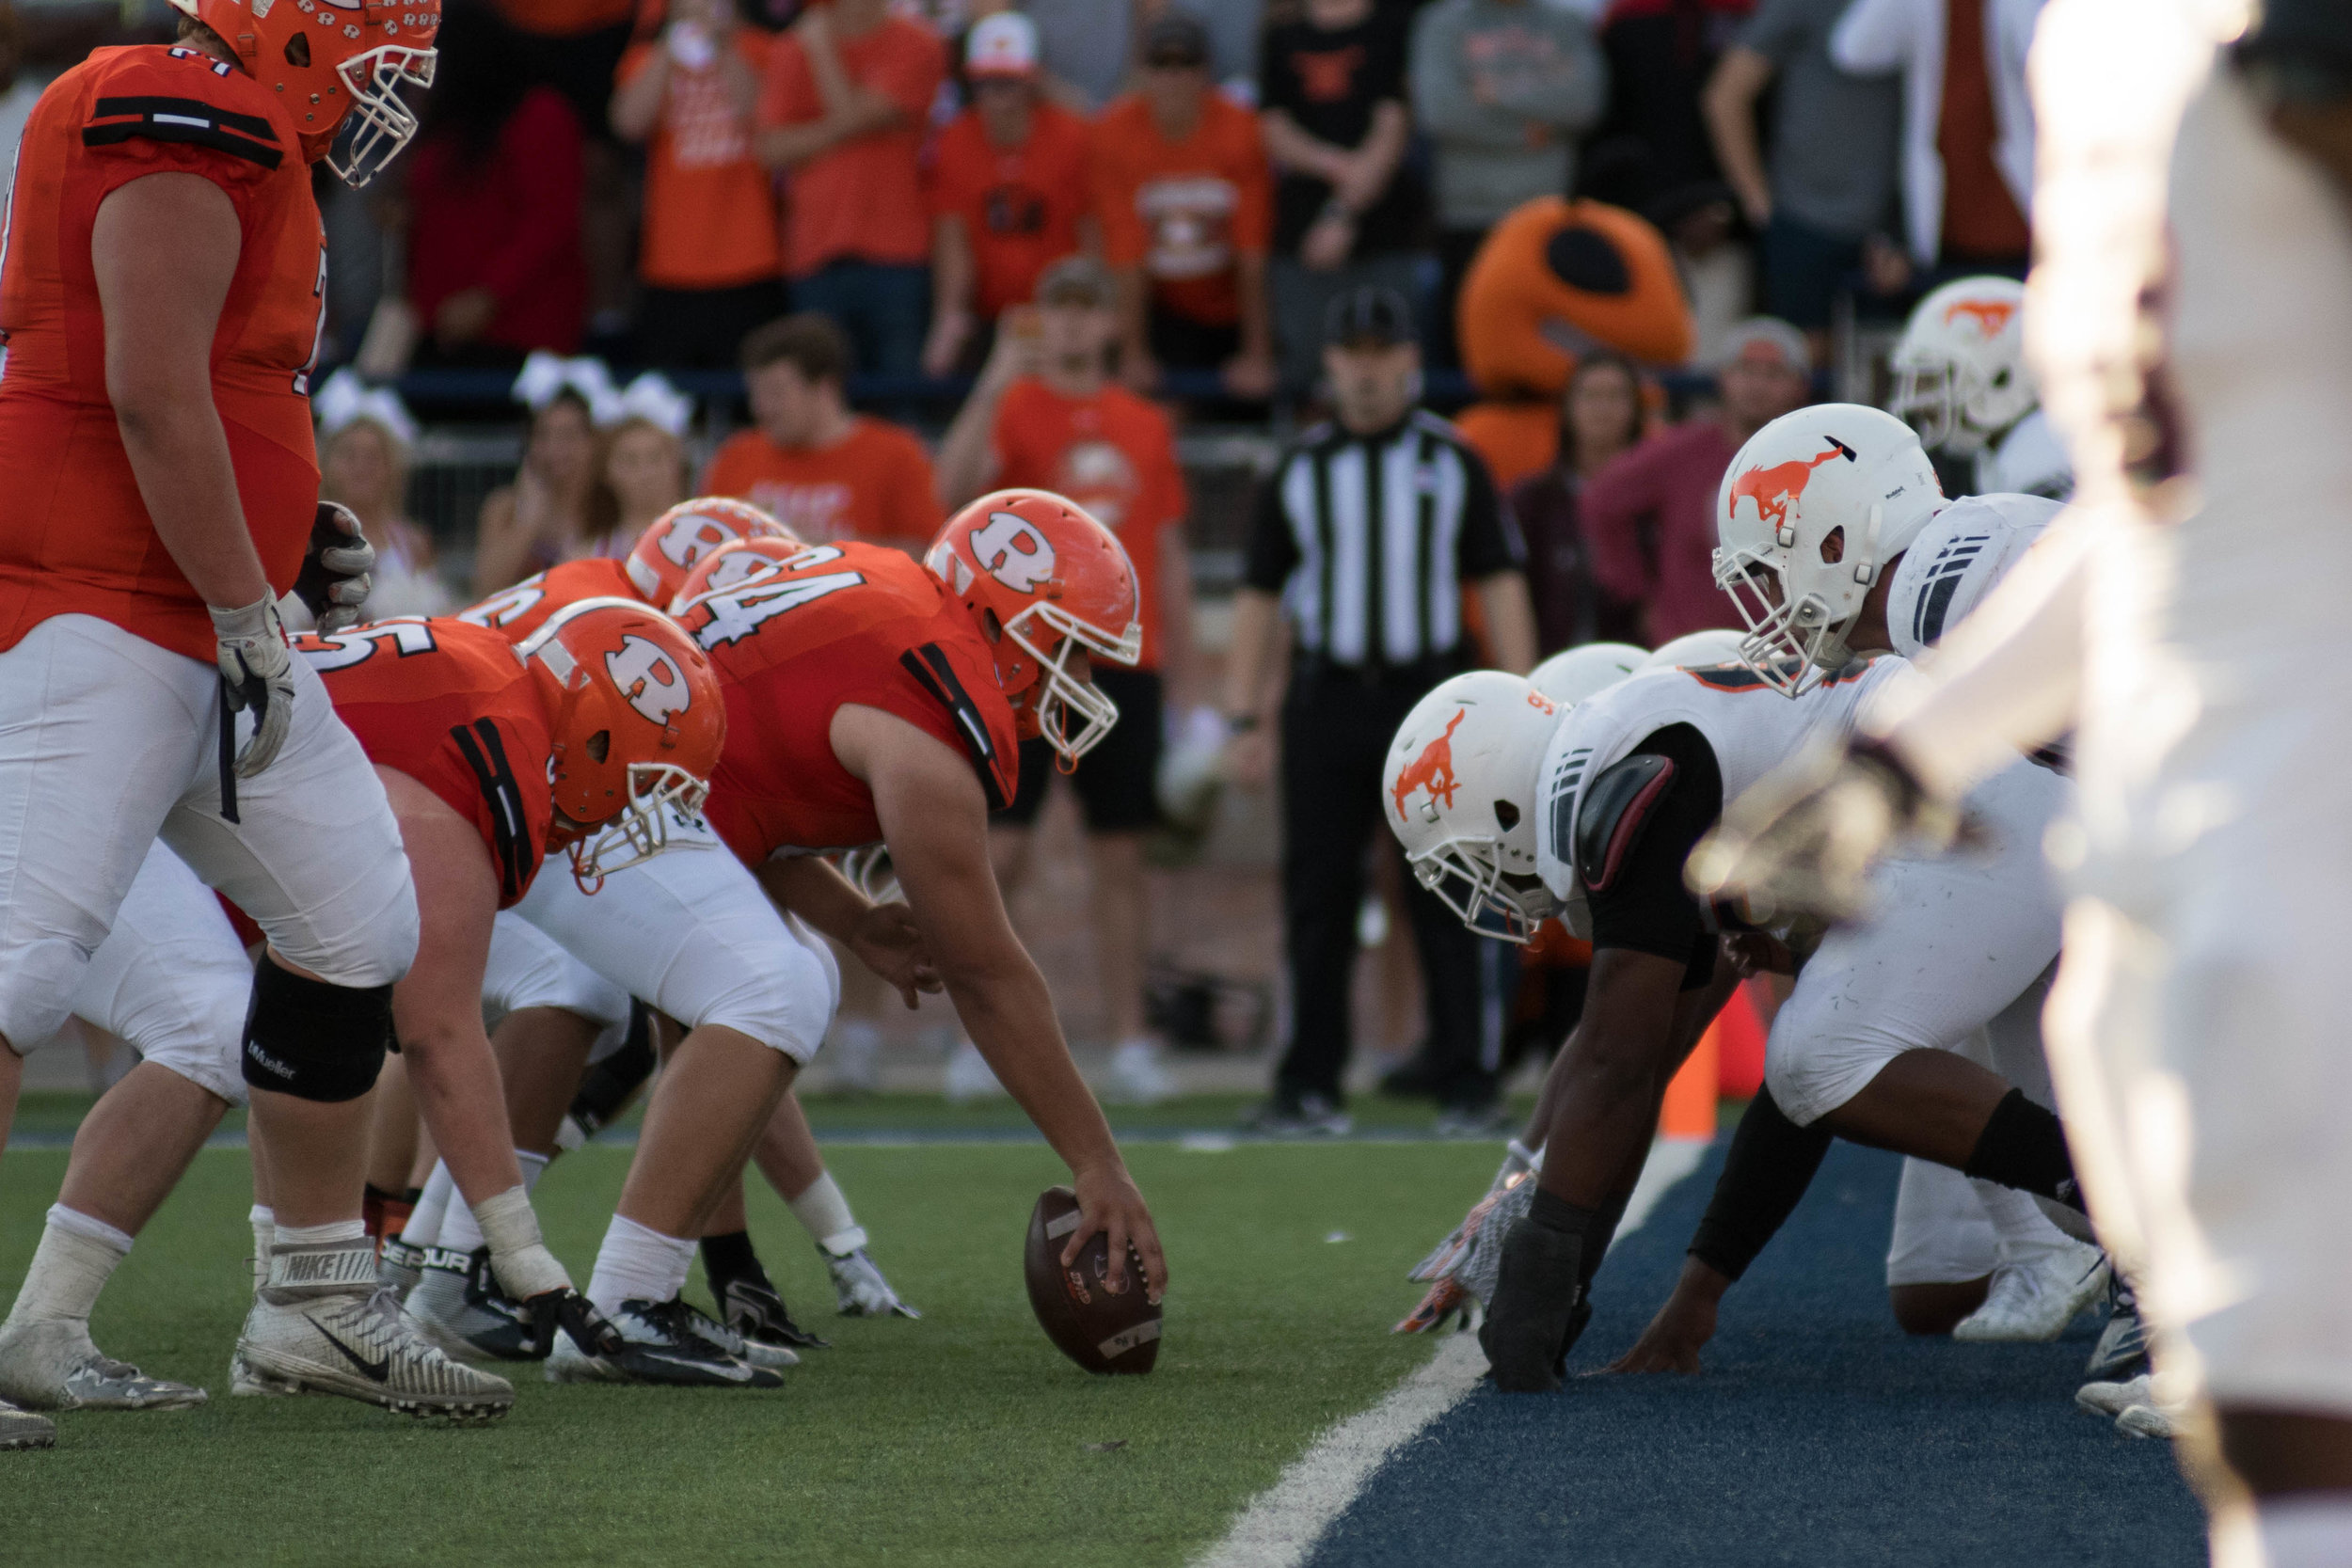 Final play of the game, Rockwall on 4th down, ball on Sachse's 1/2-yard line. | Shot with Nikon D500 w/ Nikkor 80-200 f2.8